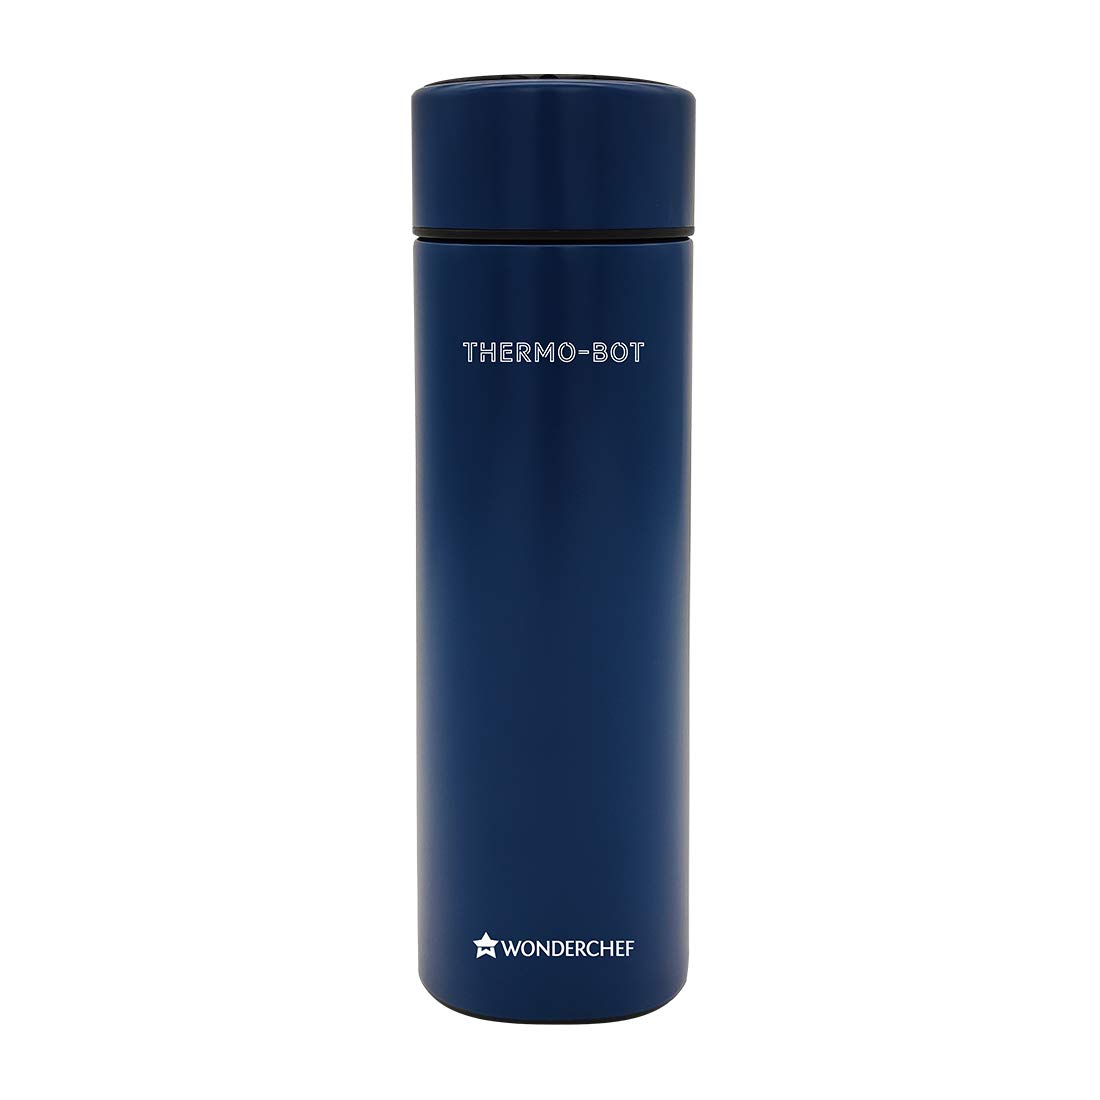 Wonderchef-Thermo-Bot-450ml-Navy-Blue